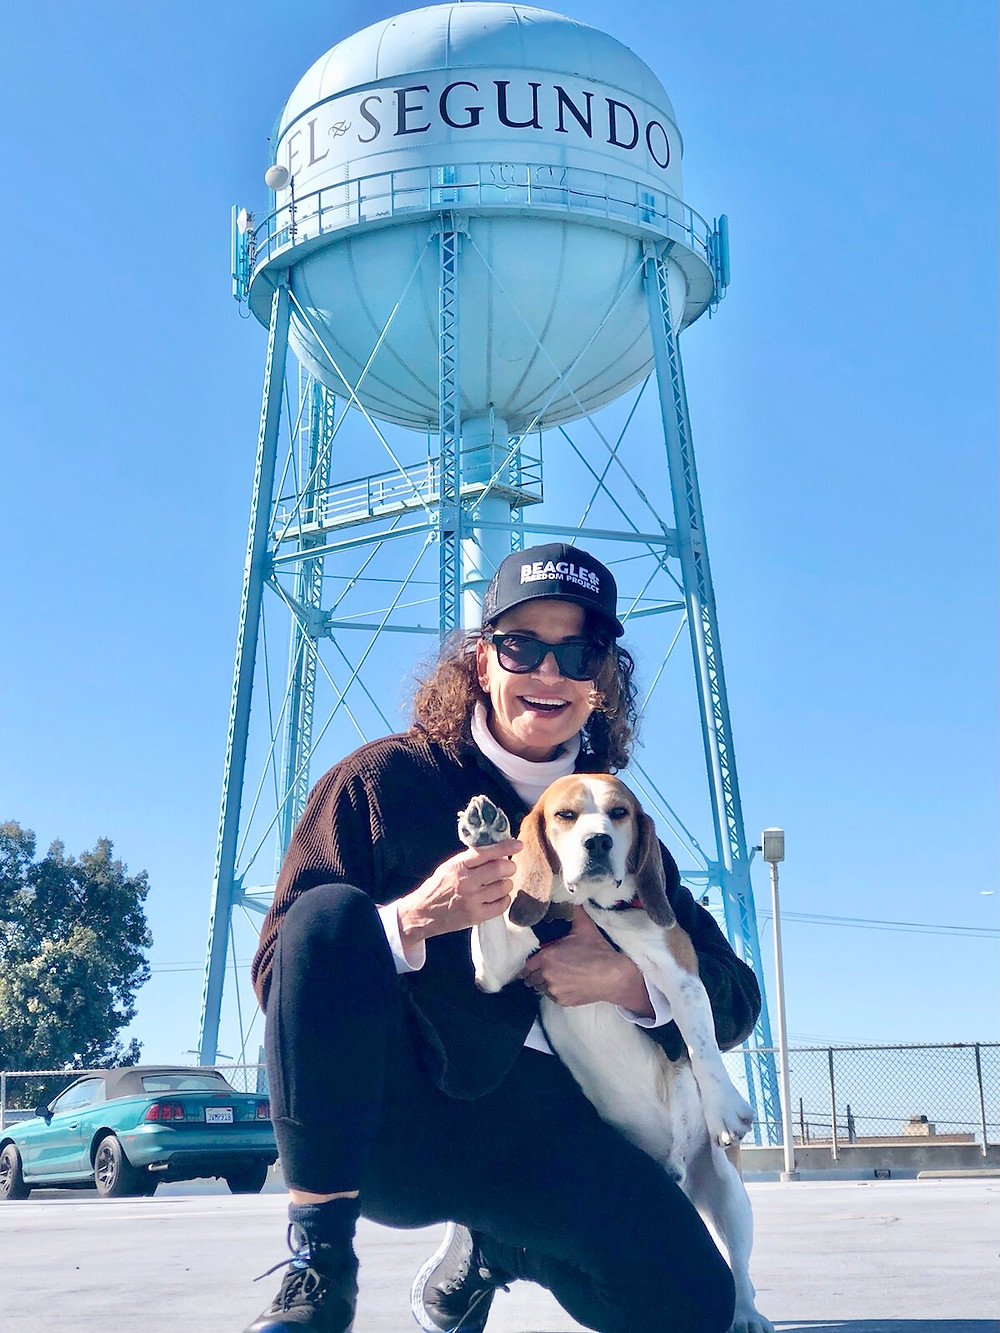 Eileen Bell and her rescue beagle pose in front of El Segundo water tower